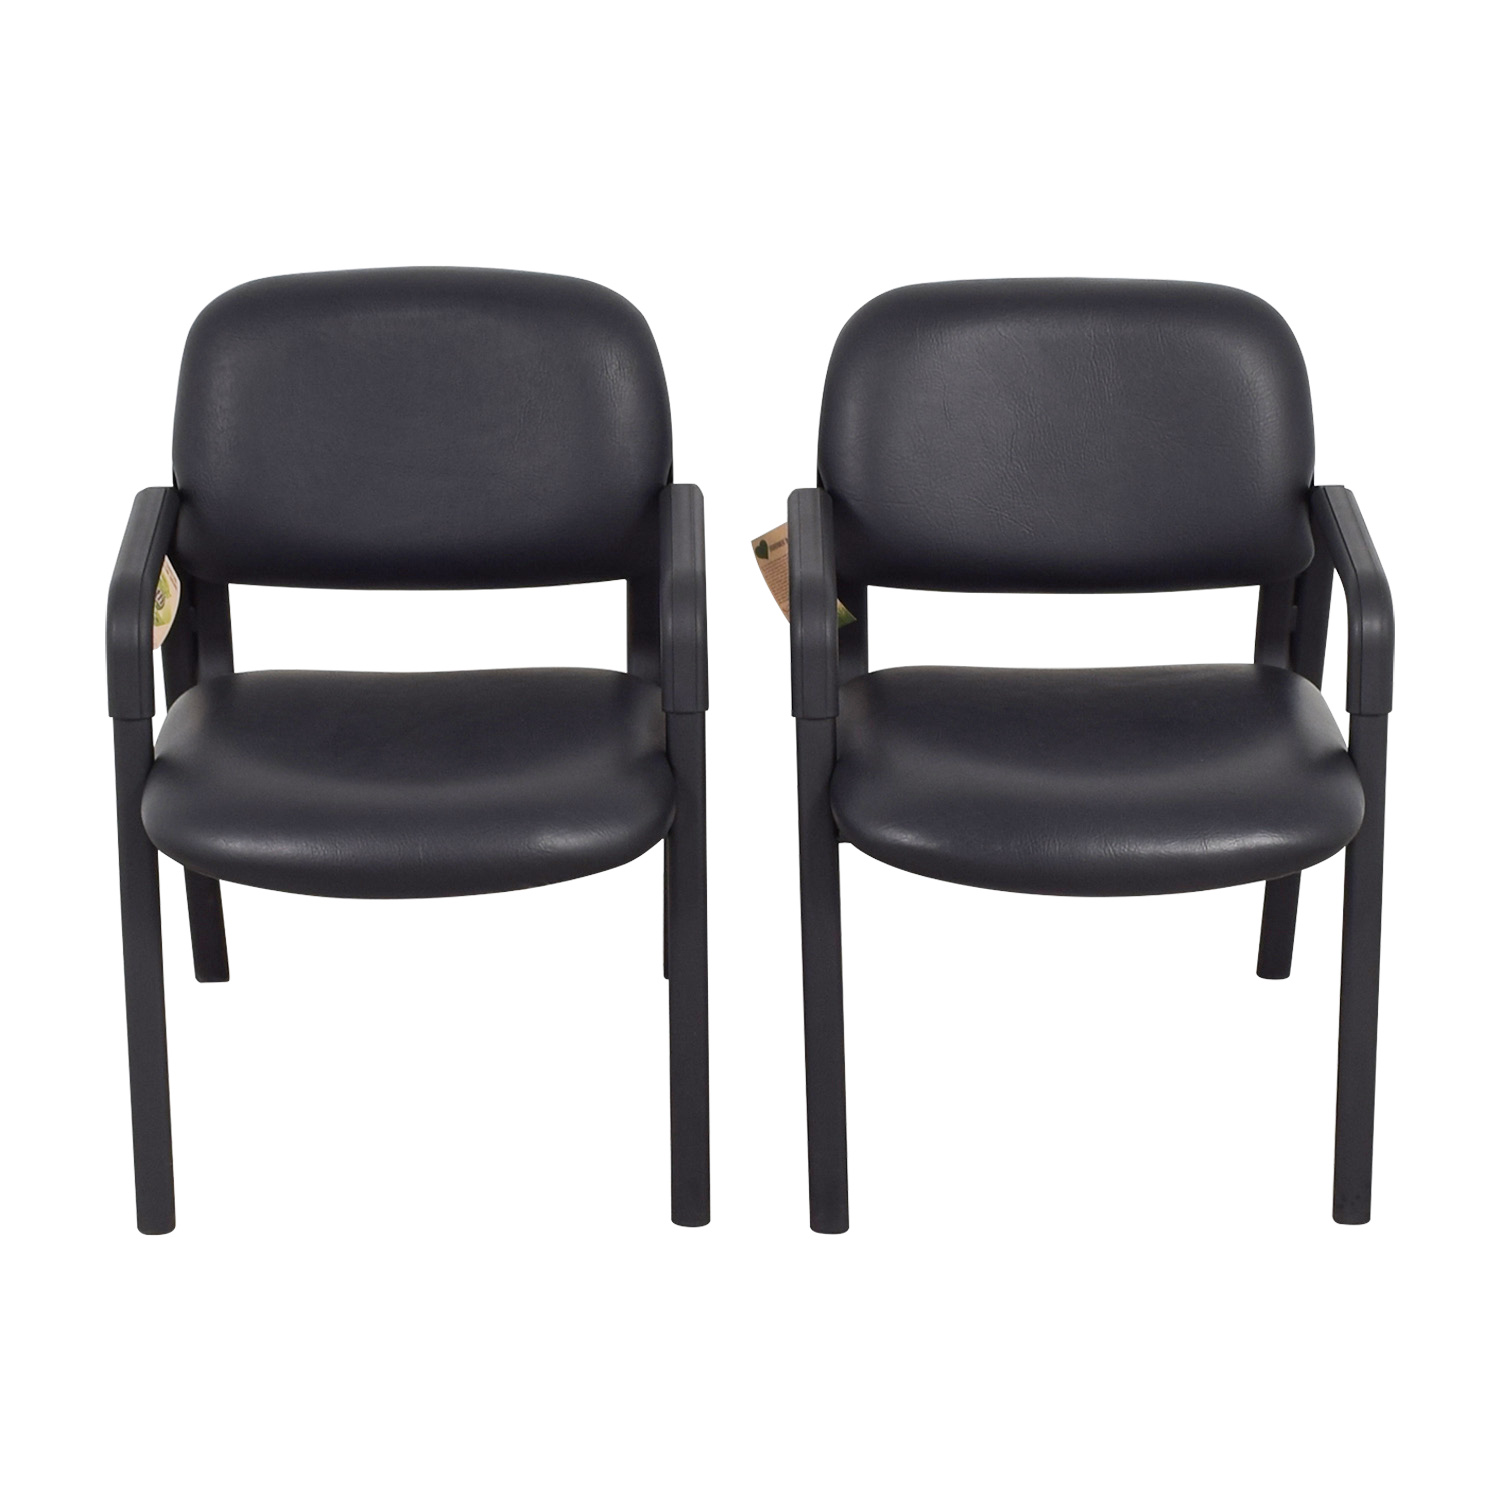 Urth Urth Cava Black Leather Chairs nj